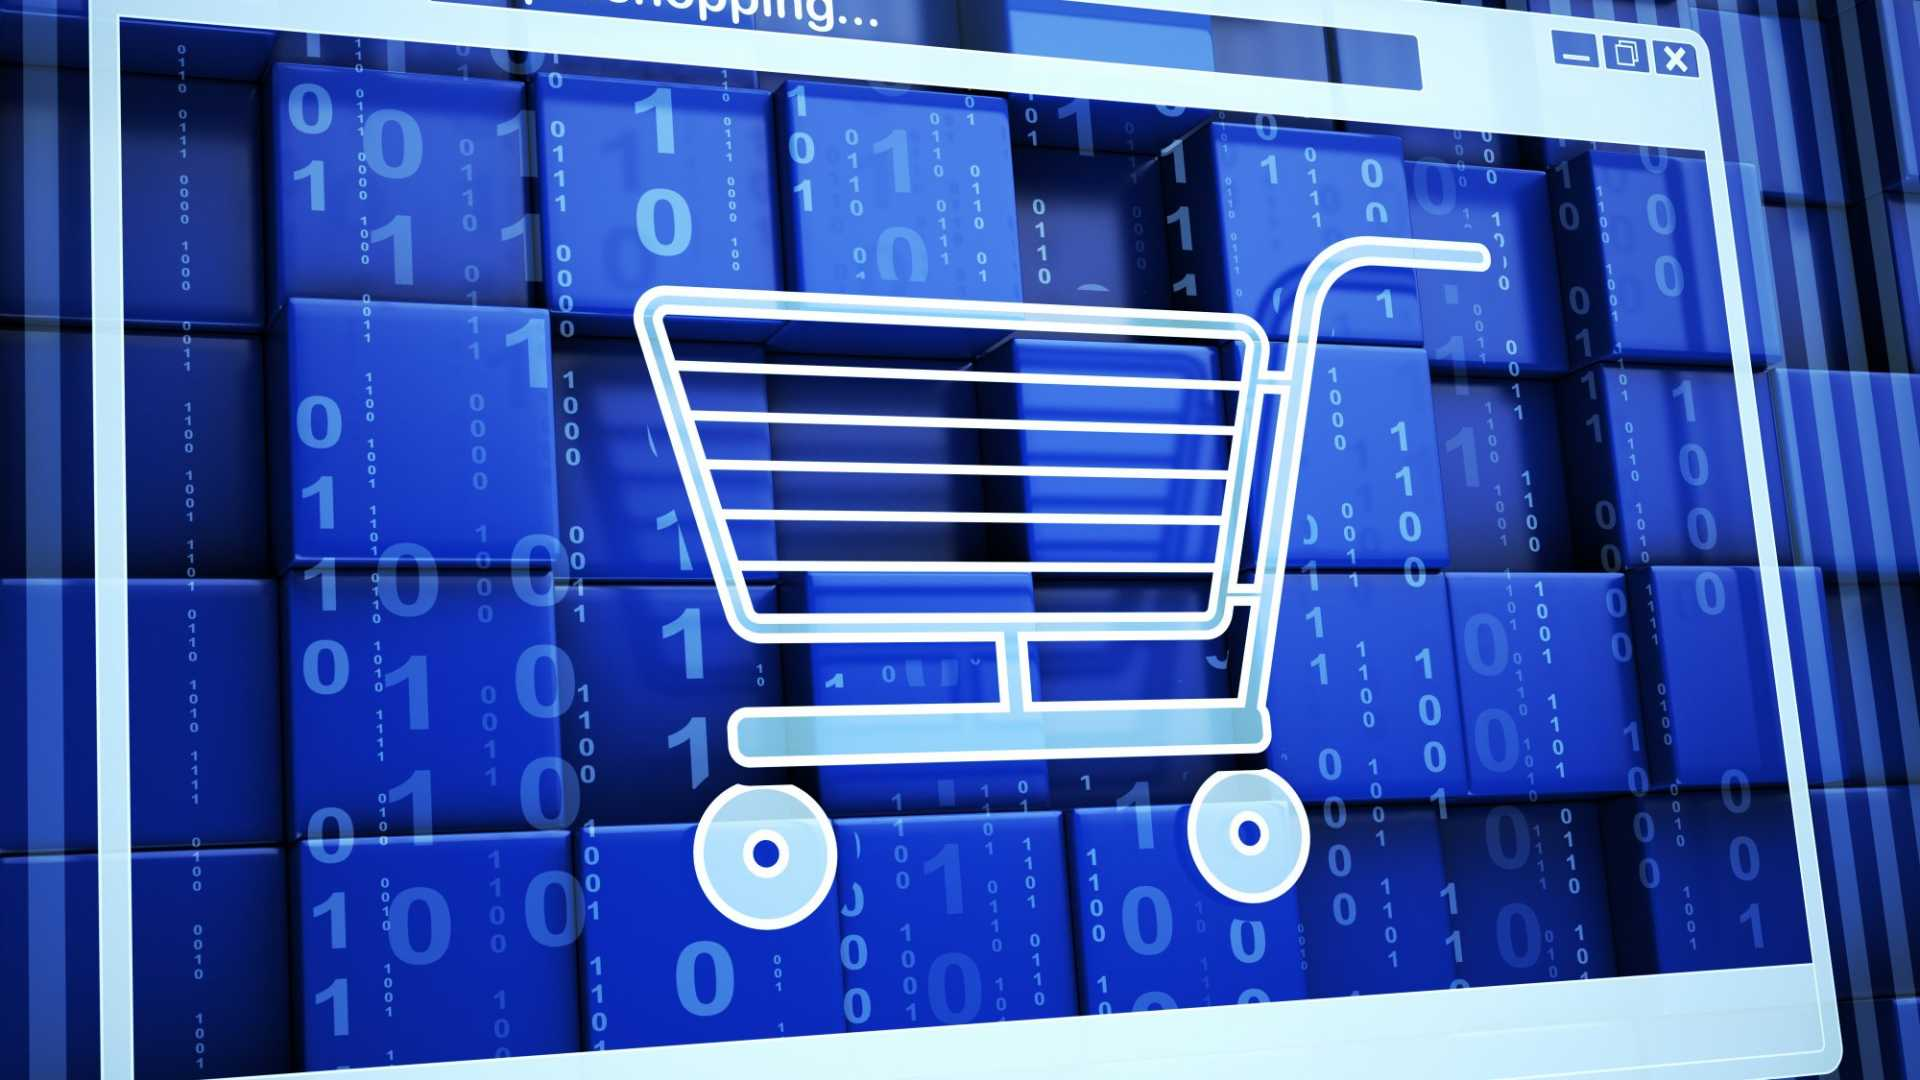 Power tool integrated systems make Ecommerce sellers into millionaires.